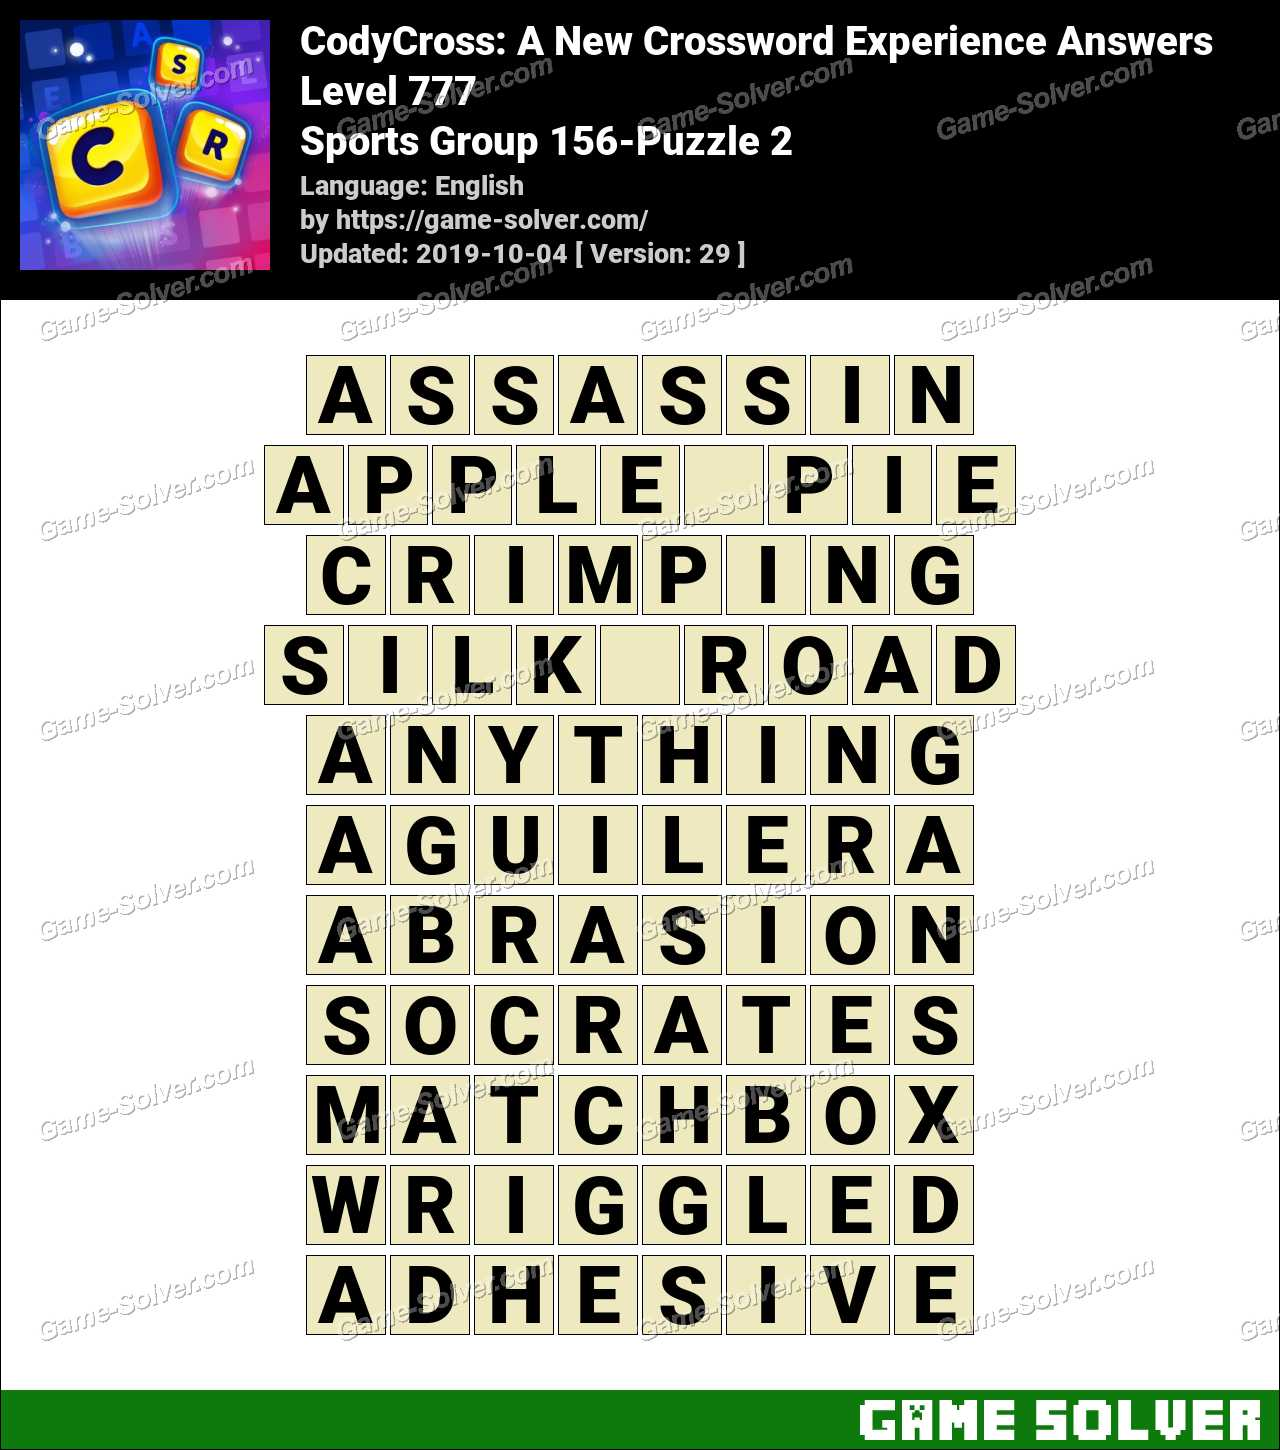 CodyCross Sports Group 156-Puzzle 2 Answers